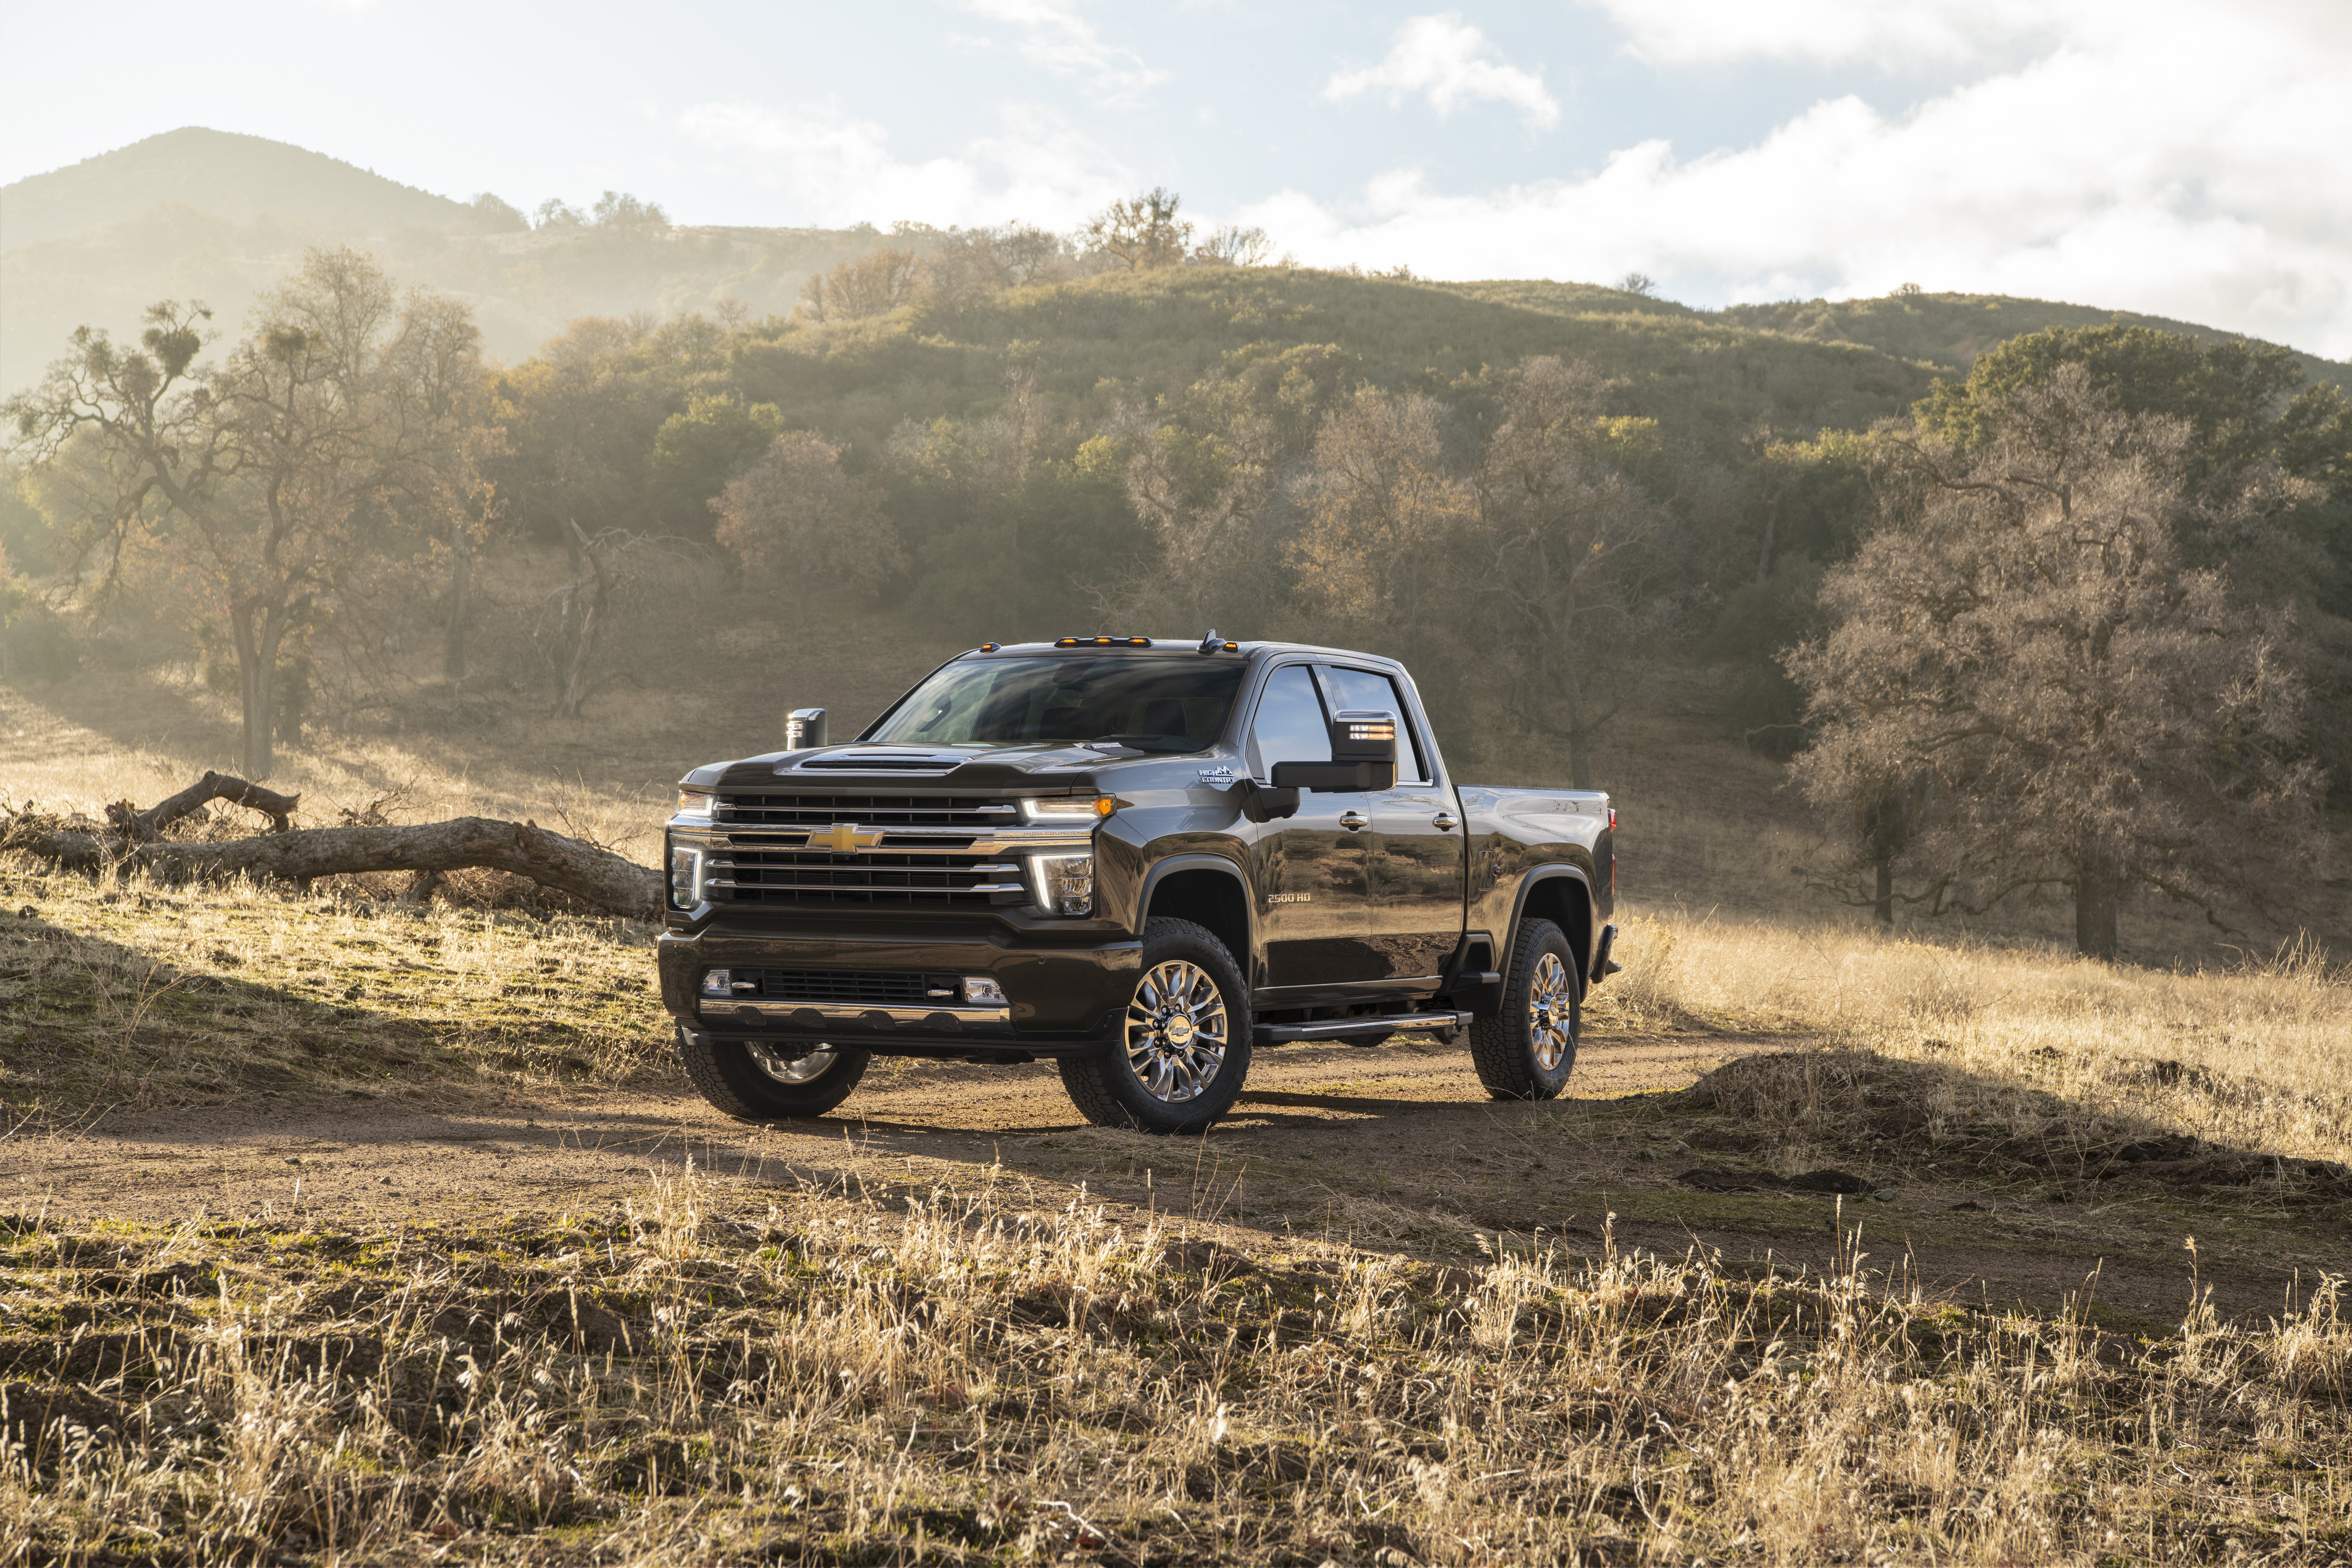 87 All New 2020 Chevy Silverado 1500 2500 Overview